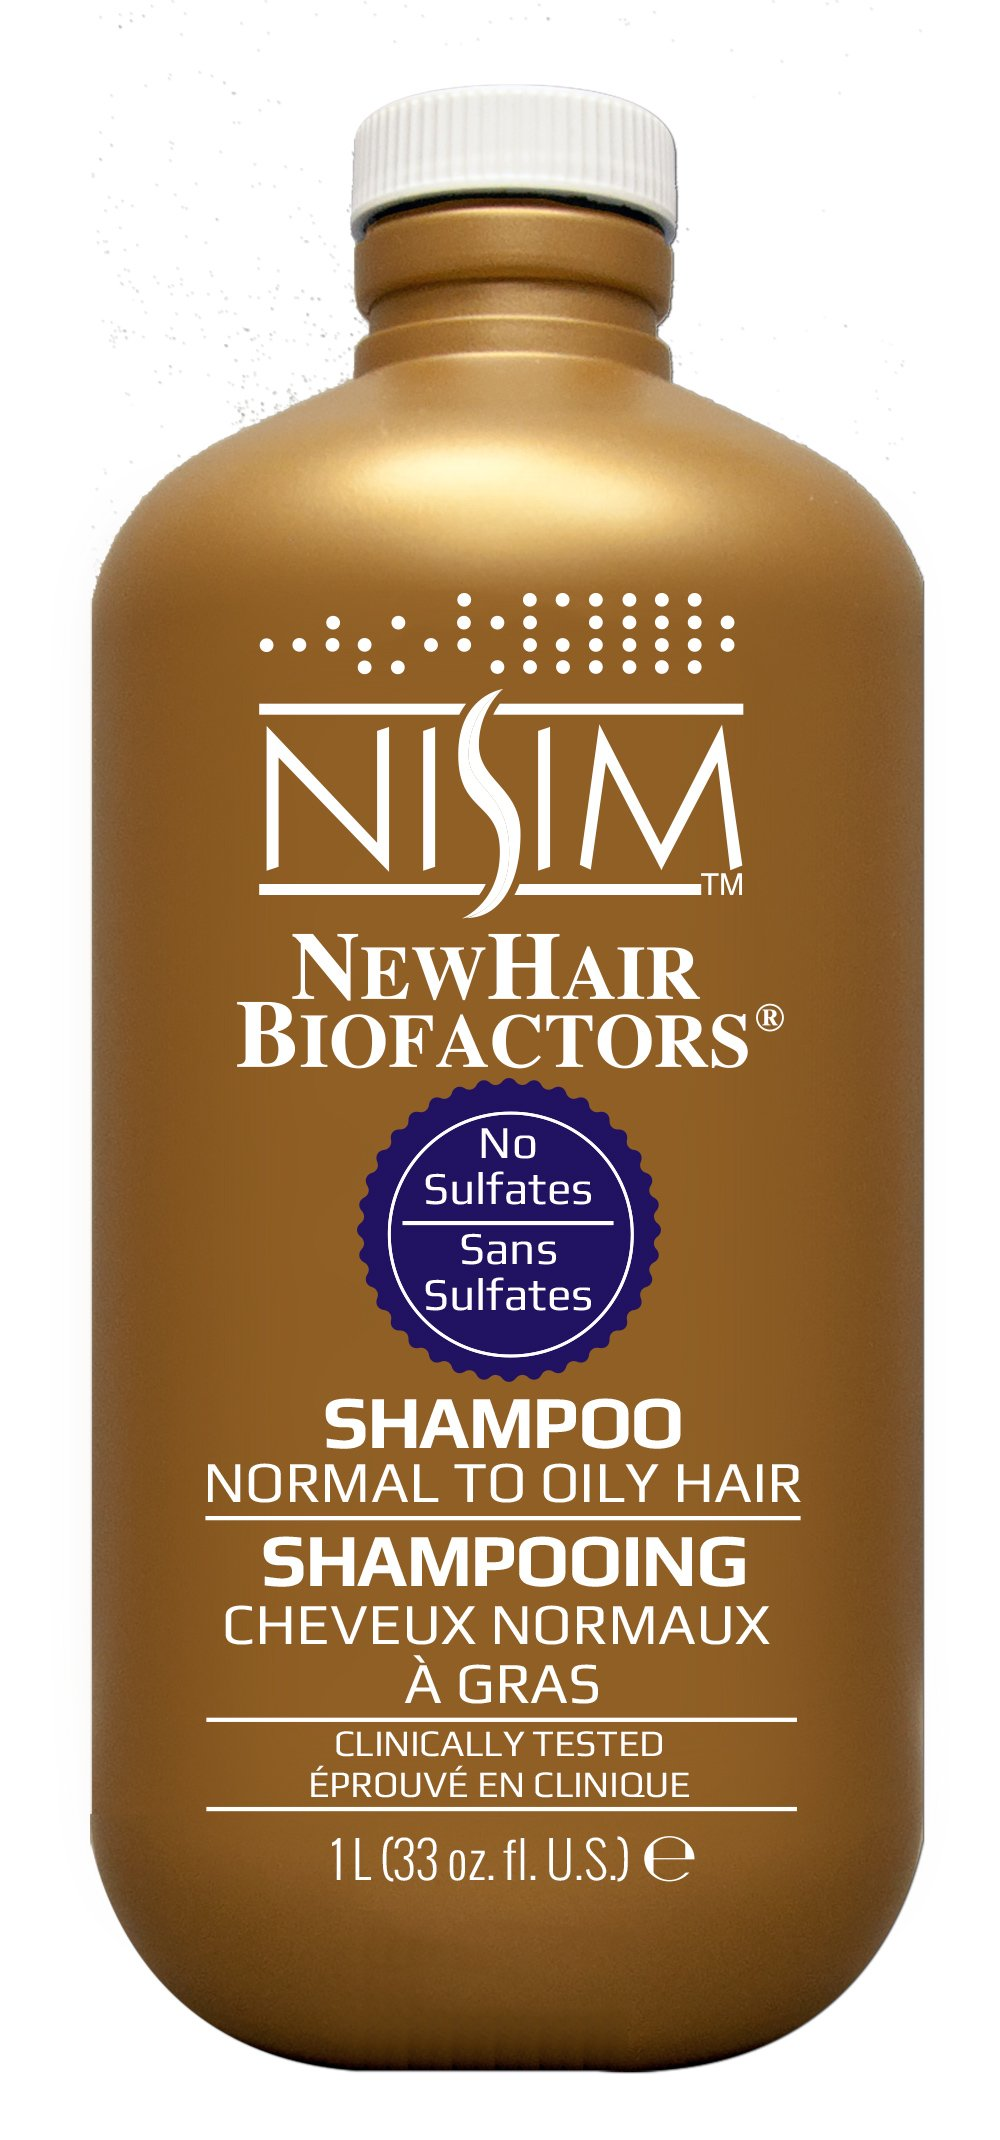 NISIM NewHair BioFactors Shampoo for Normal To Oily Hair - Deep Cleaning Shampoo That Controls Excessive Hair Loss (33 Ounce / 1000 Milliliter) by Nisim